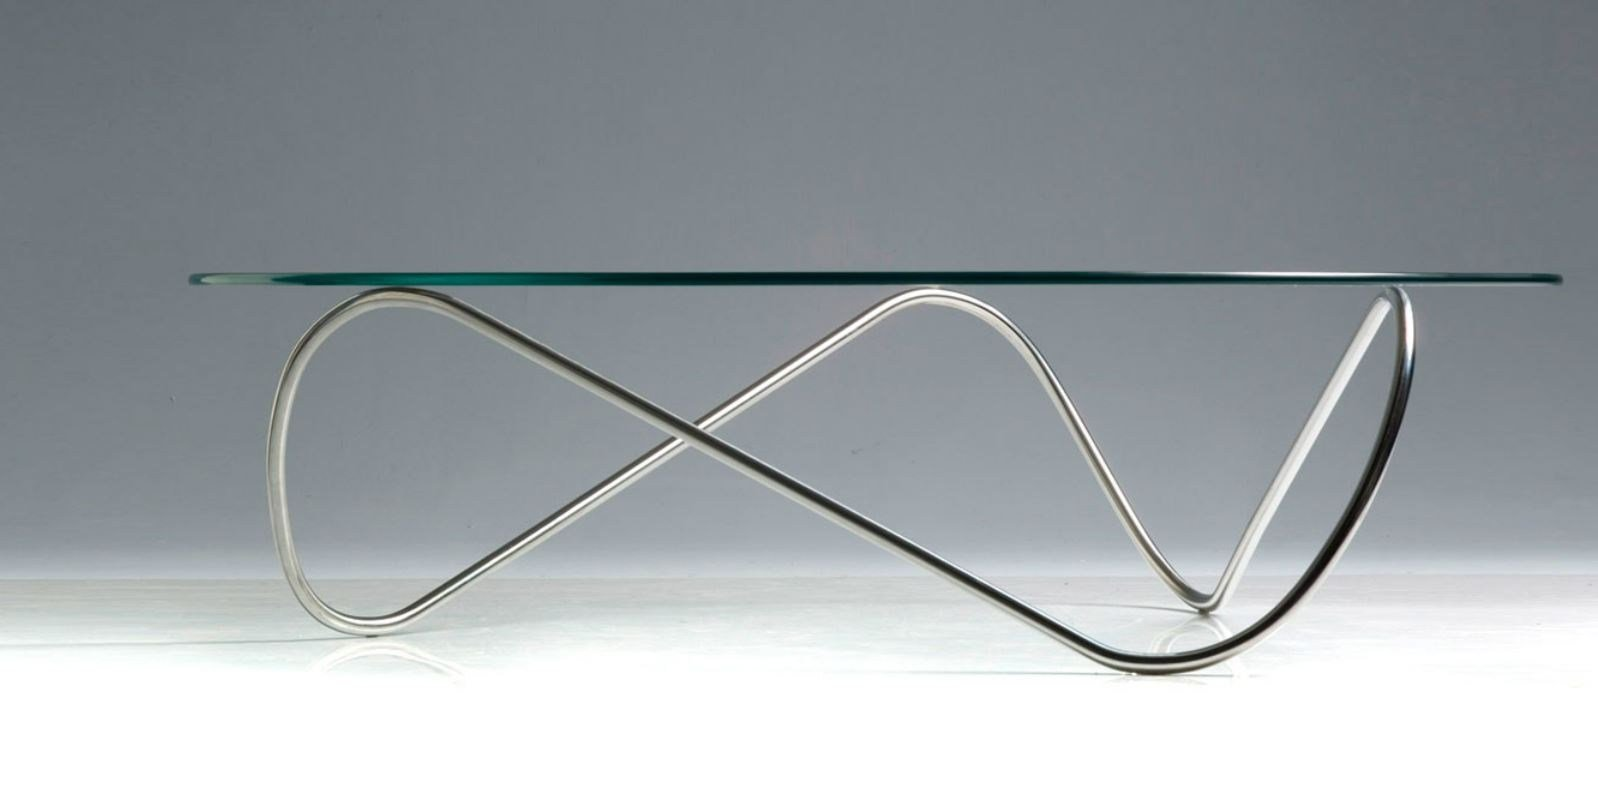 Low Round Coffee Table Kaeko By Objekto Design Rafic Farah